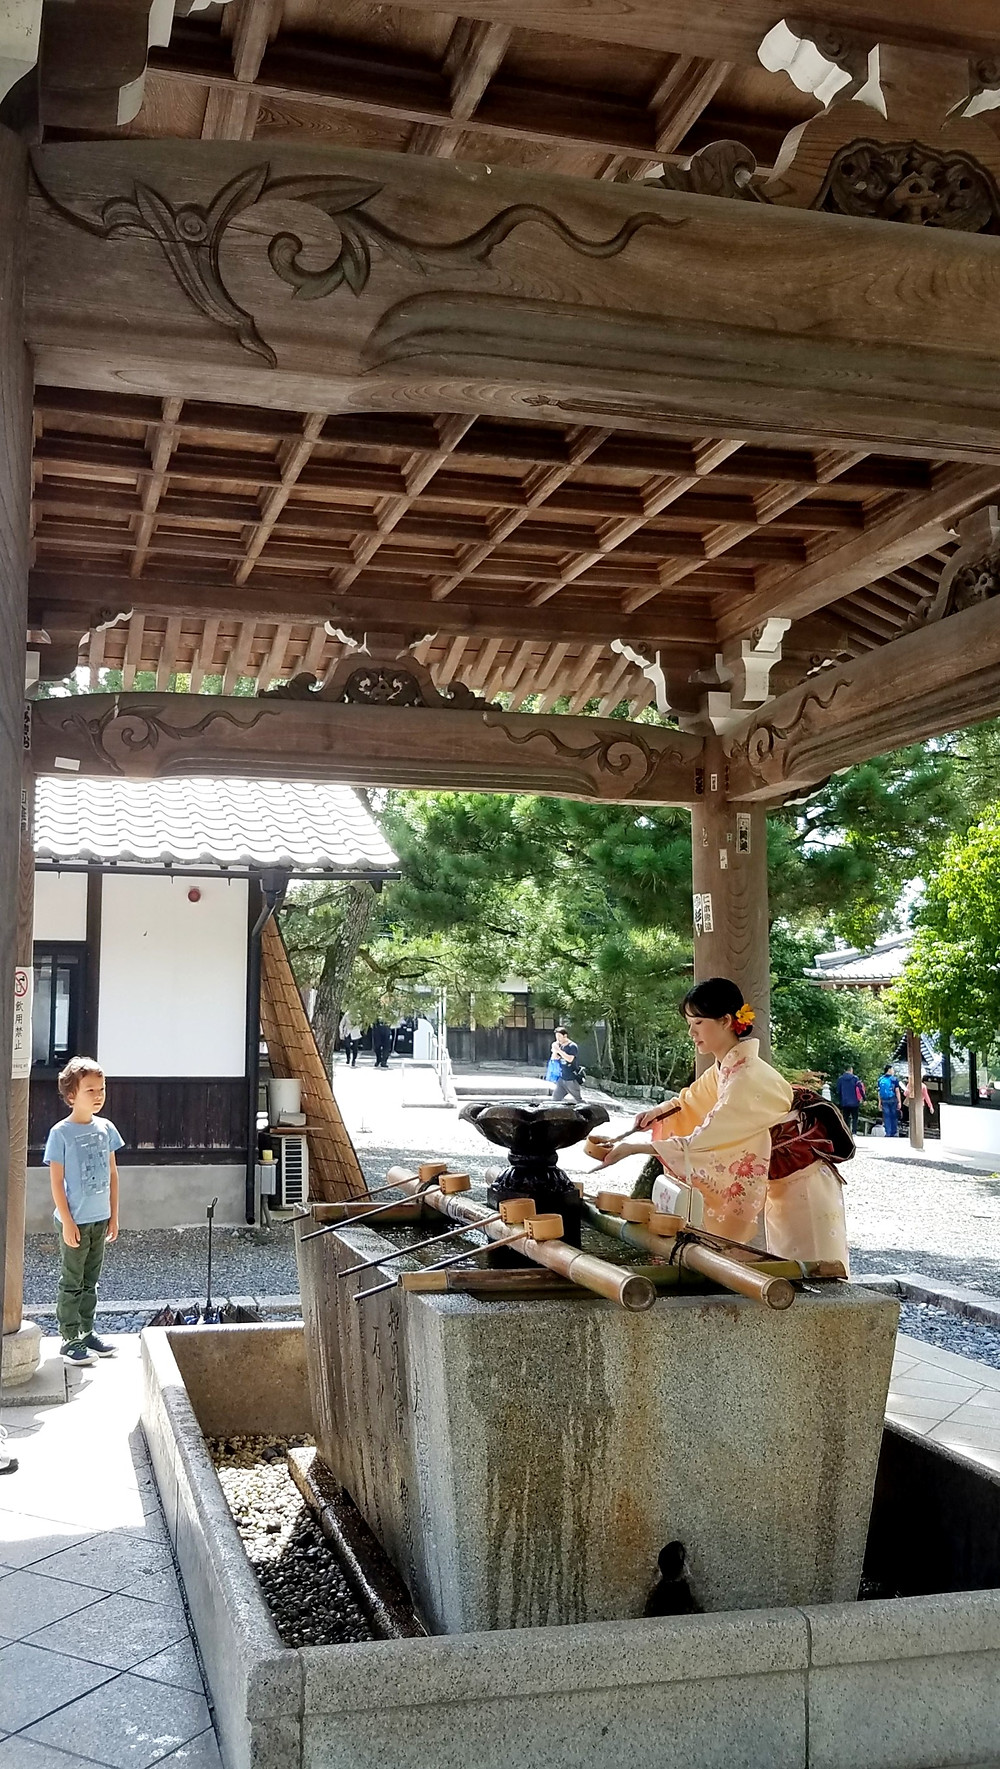 water cleansing ritual, Chionin Temple, Kyoto, Japan